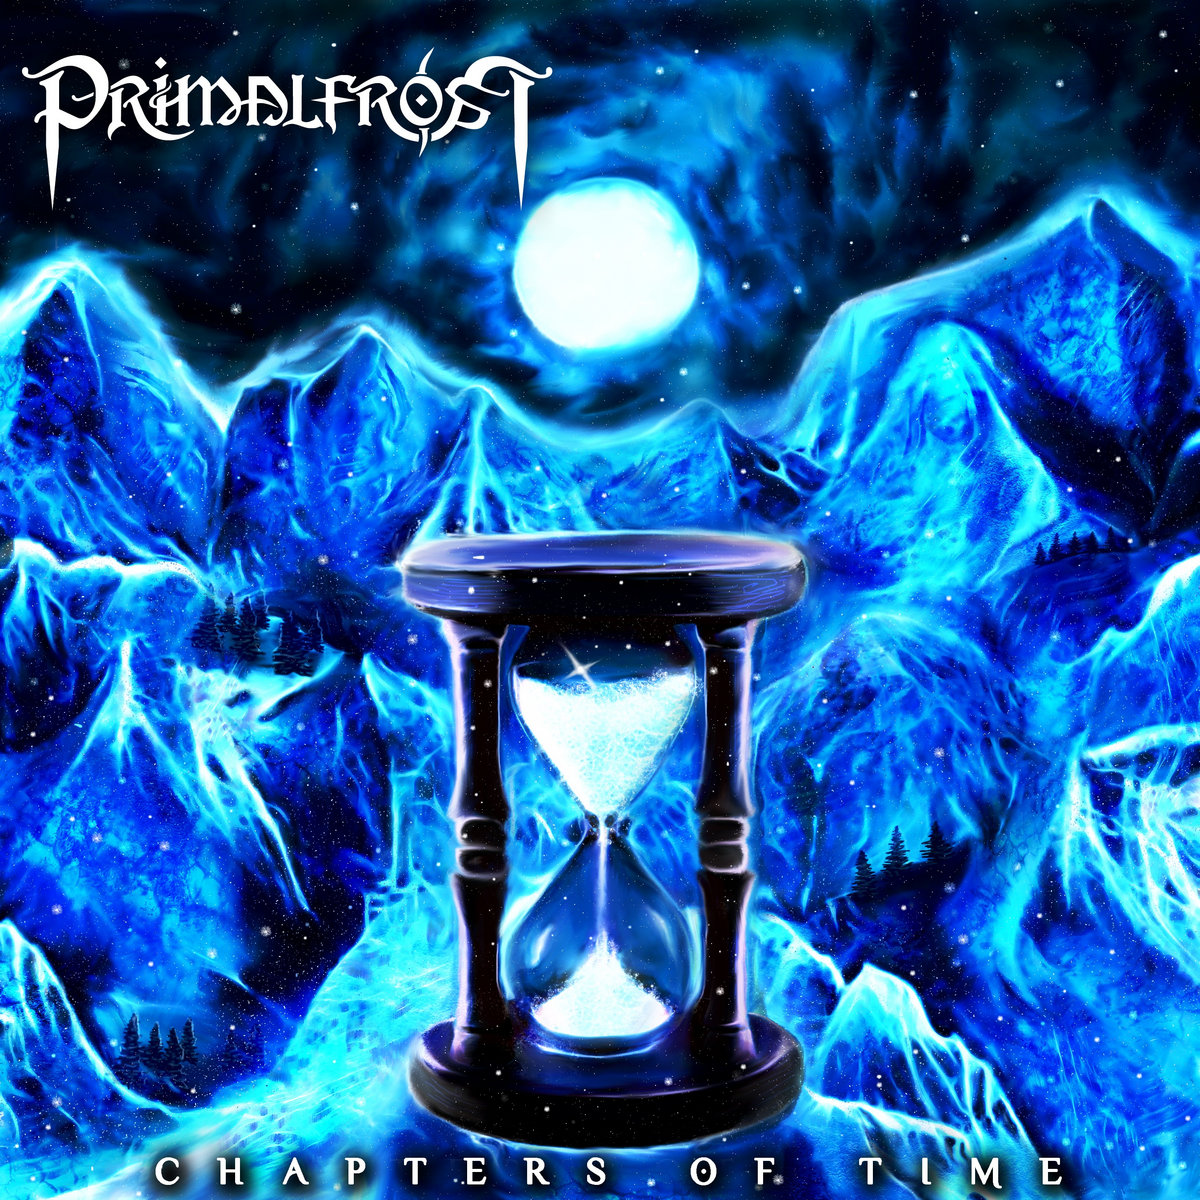 Primalfrost - Chapters of Time (EP 2012)